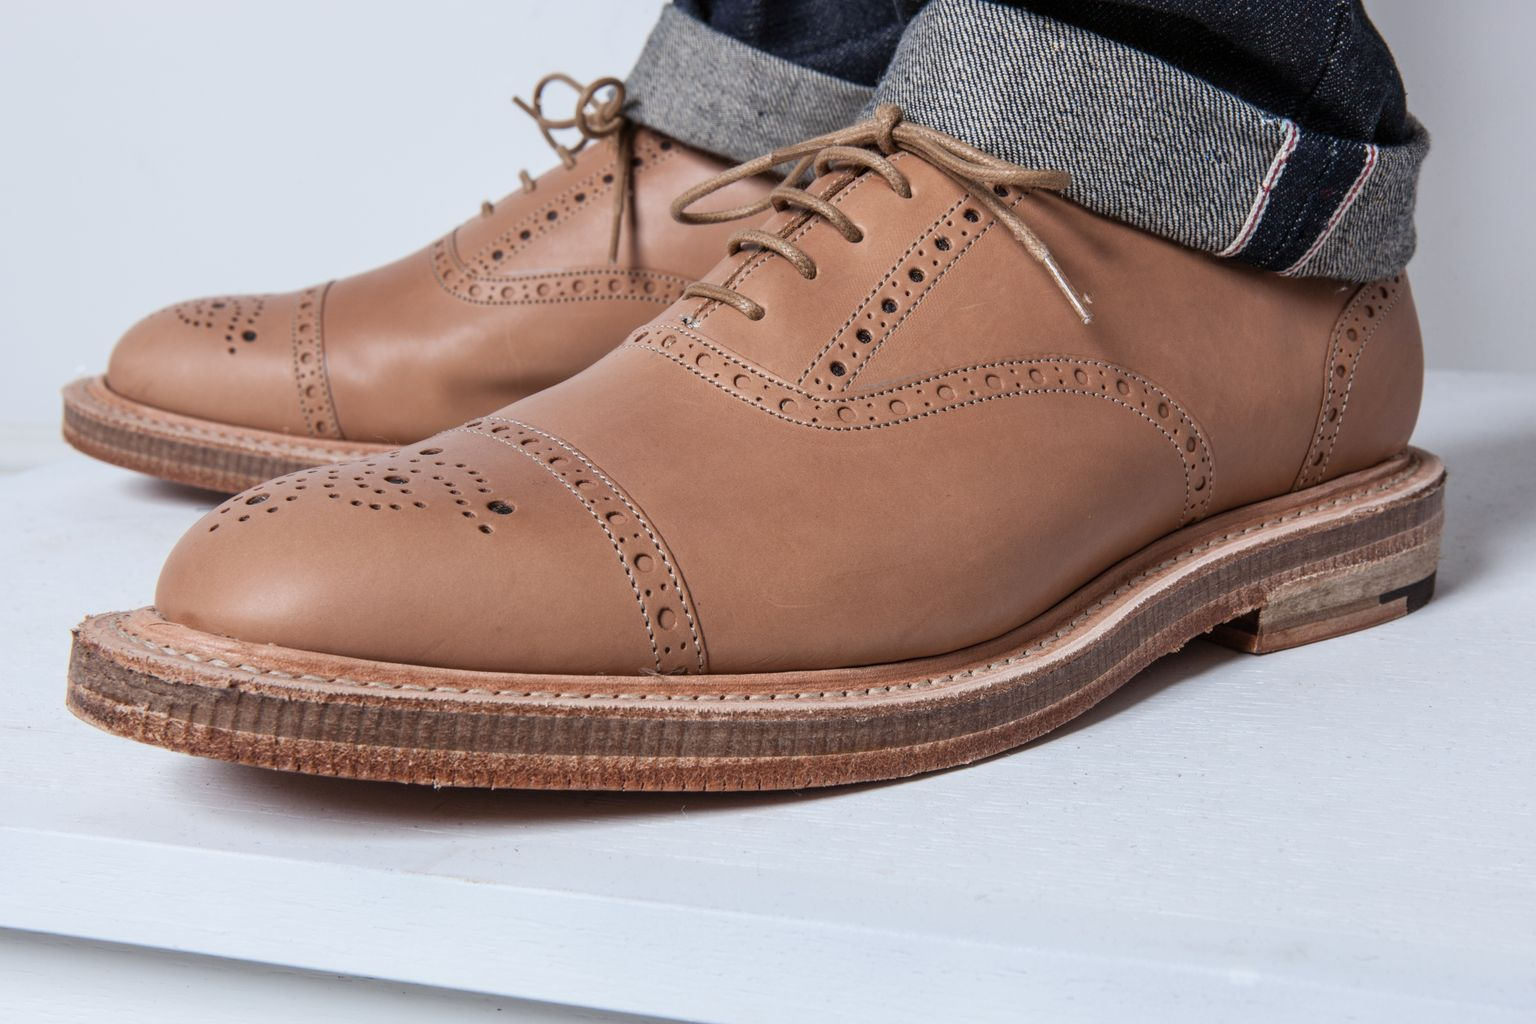 The Poulton Brogue